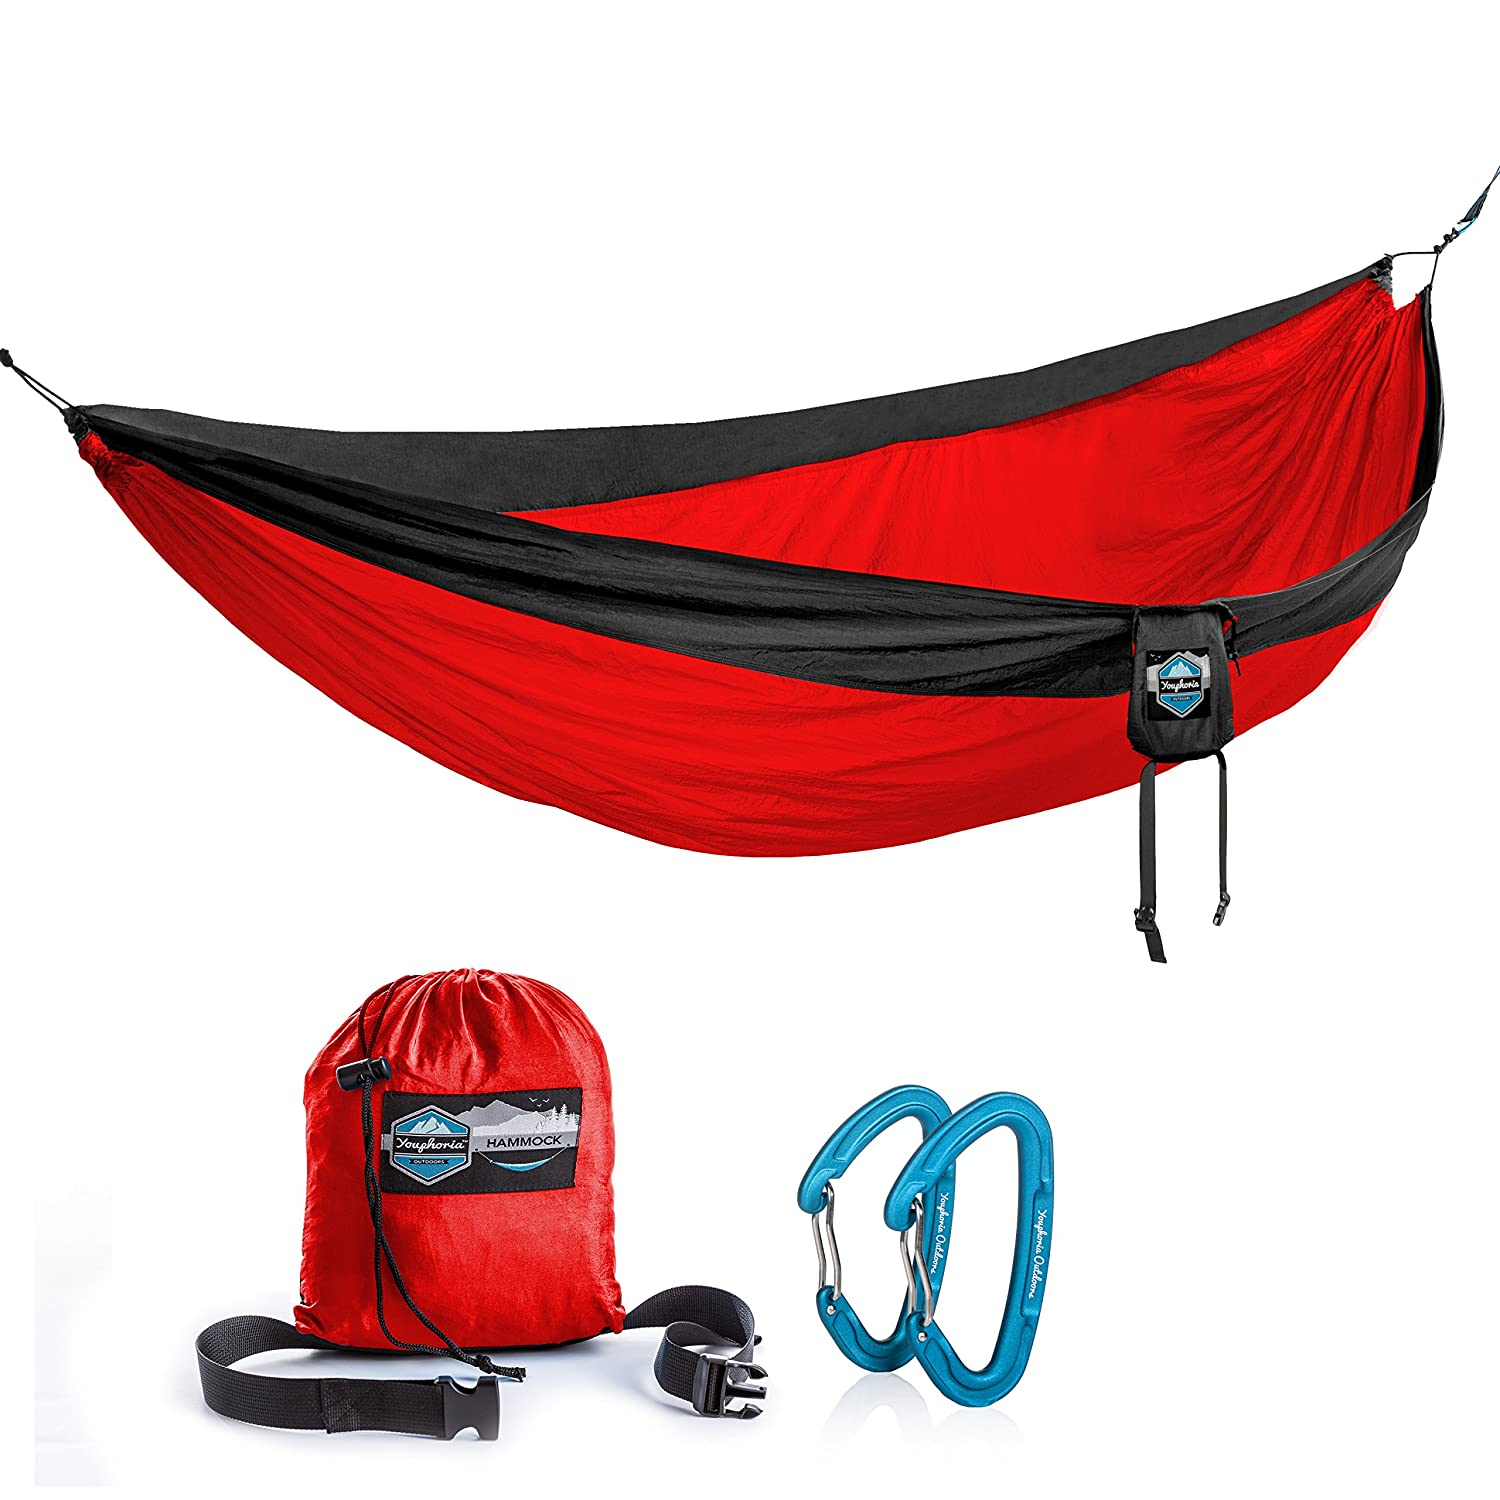 Youphoria Outdoors Double Parachute Camping Hammock Lightweight Nylon Compression Travel Hammock with Premium Wiregate Aluminum Carabiners – Straps Not Included